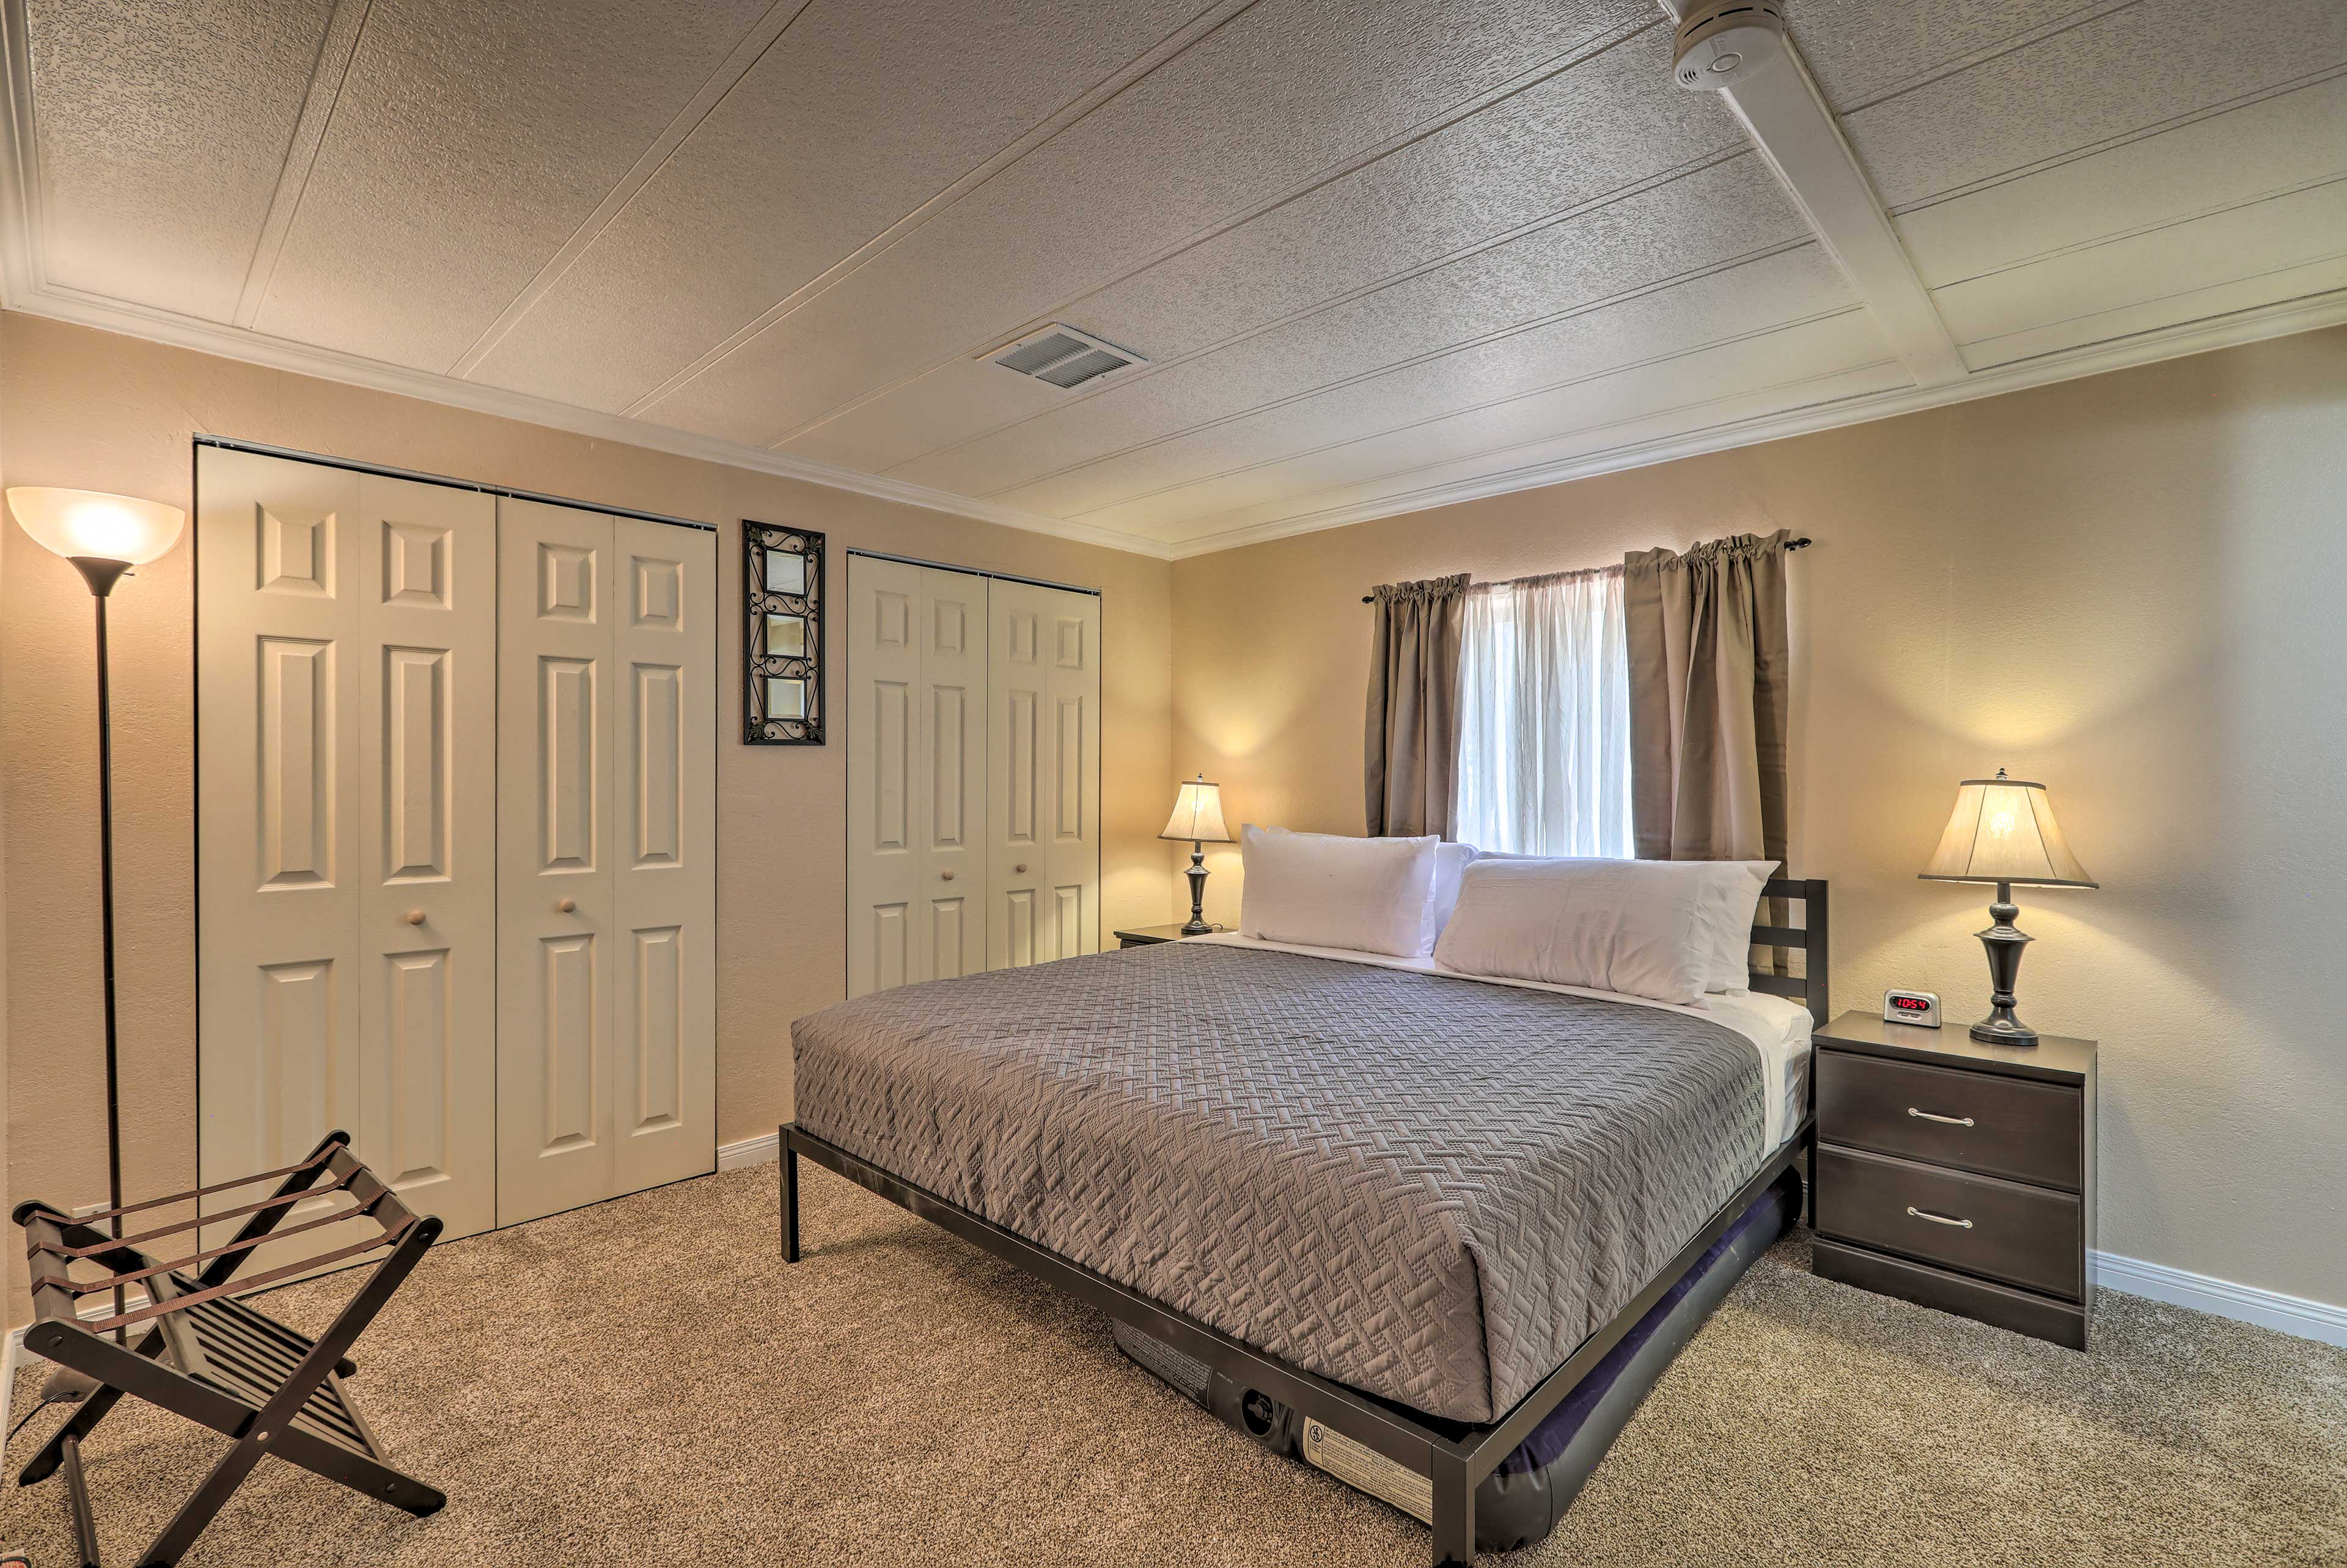 The master bedroom is complete with a king bed and full-sized air mattress.